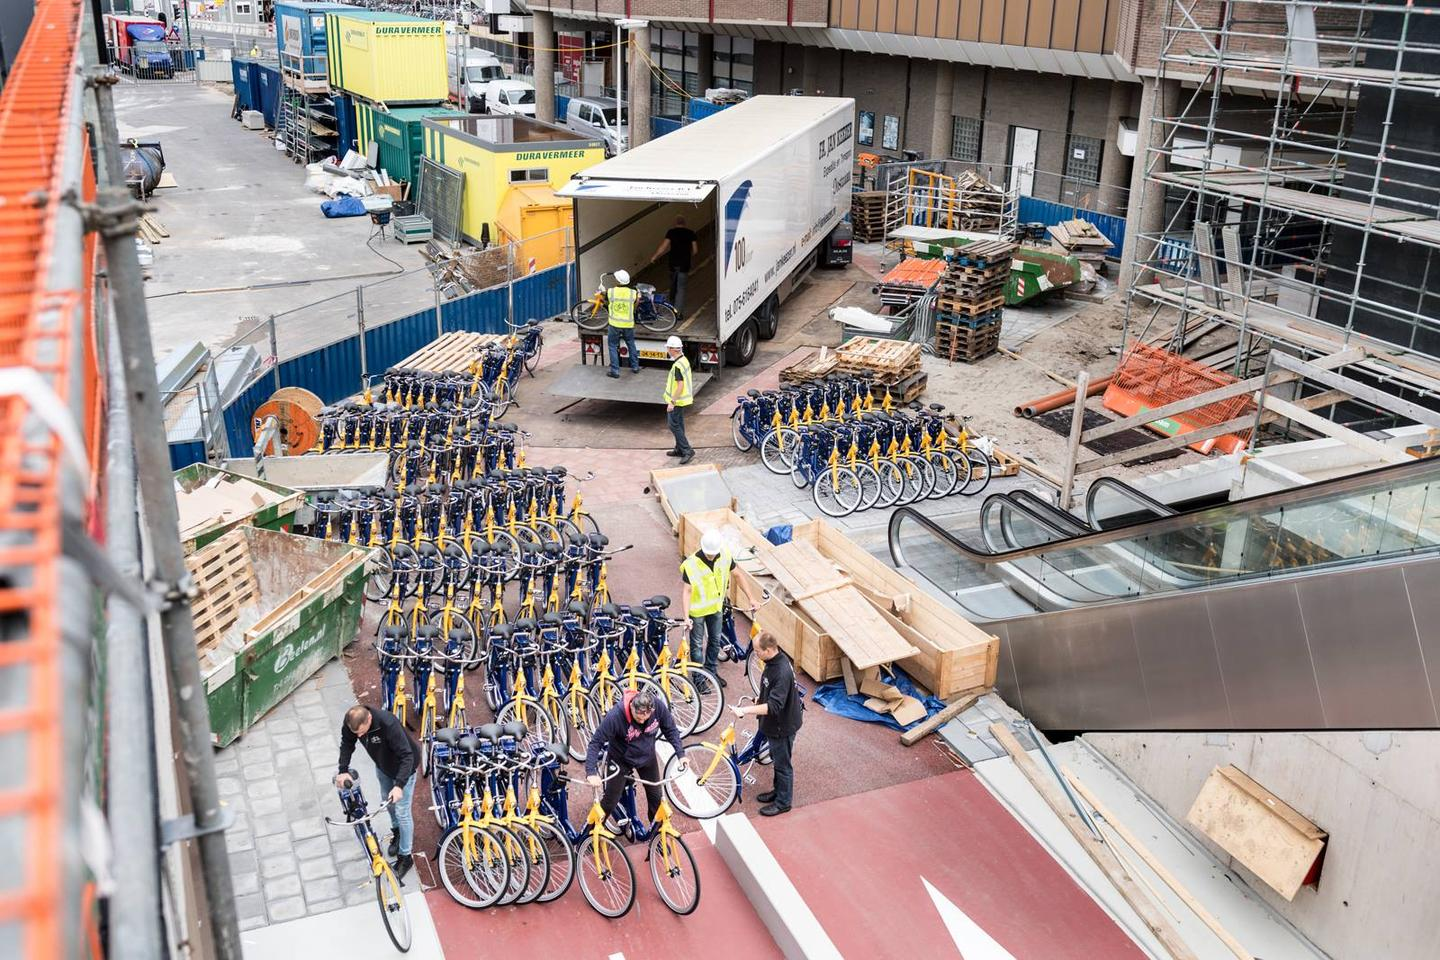 Workmen start moving 700 public hire bicycles into the Stationsplein Bicycle Parking facility in Utrecht